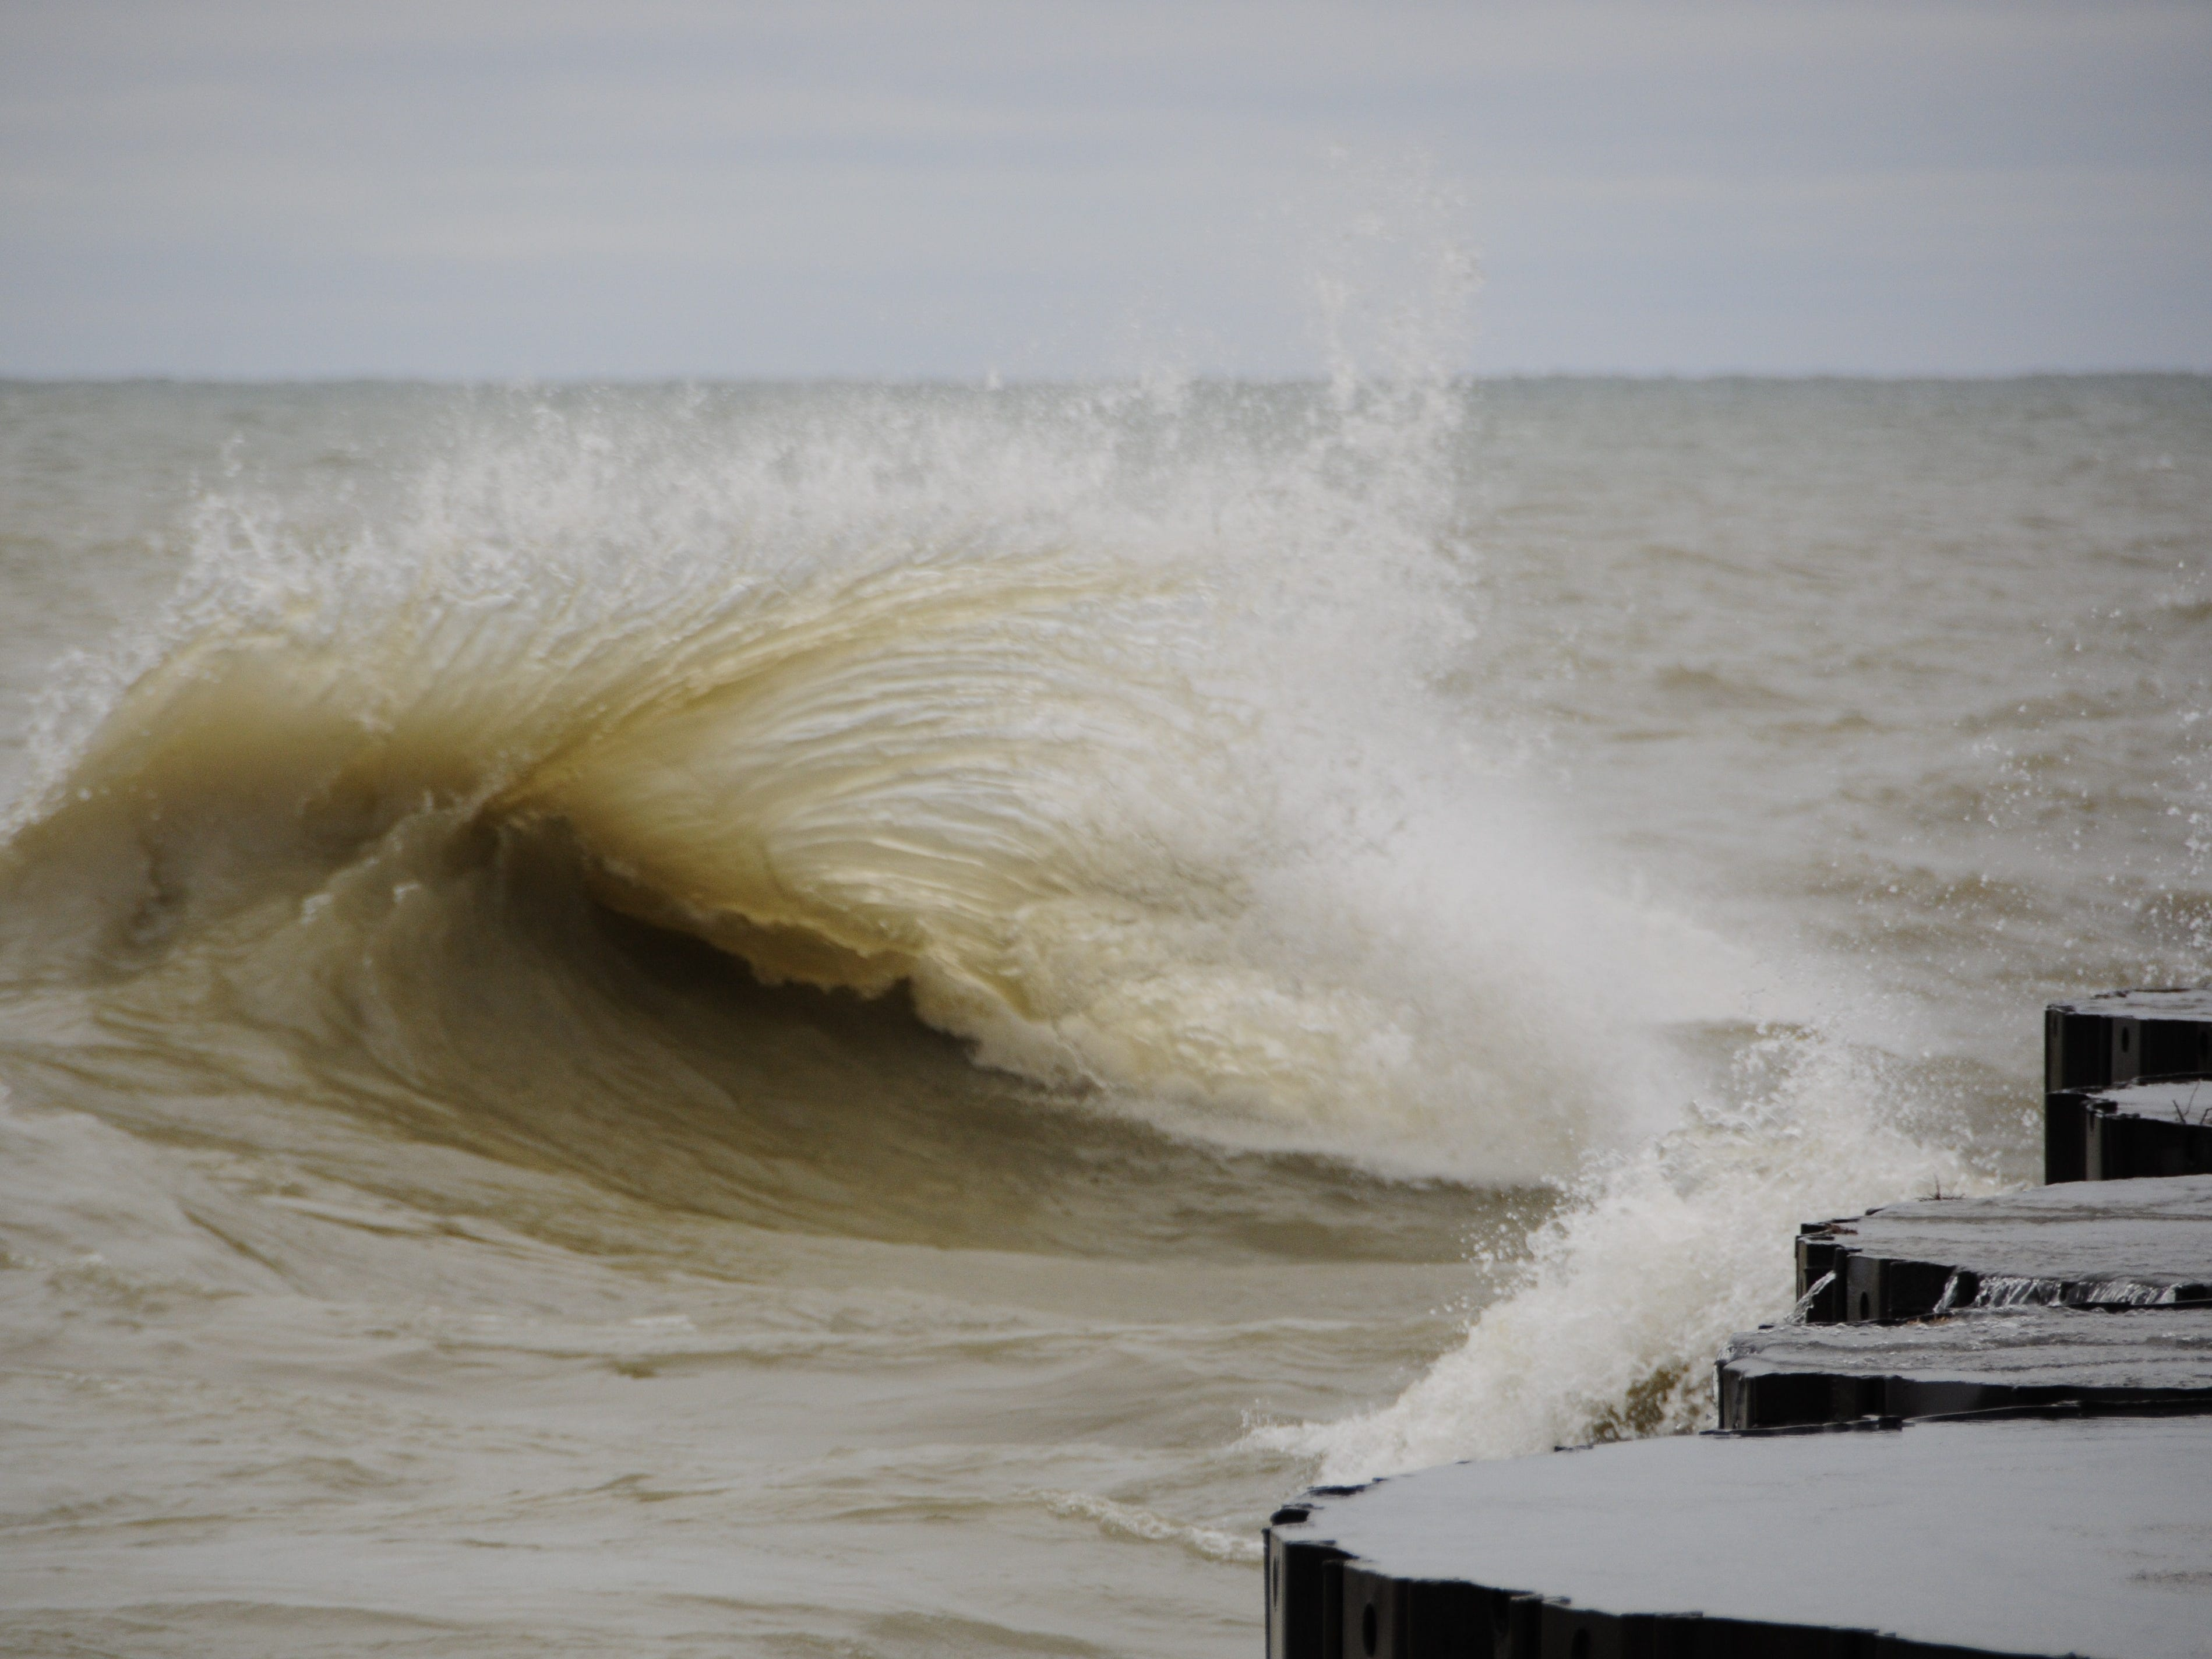 A wave erupts into tentacle-like streamers in Port Sanilac on New Year's Day 2019.